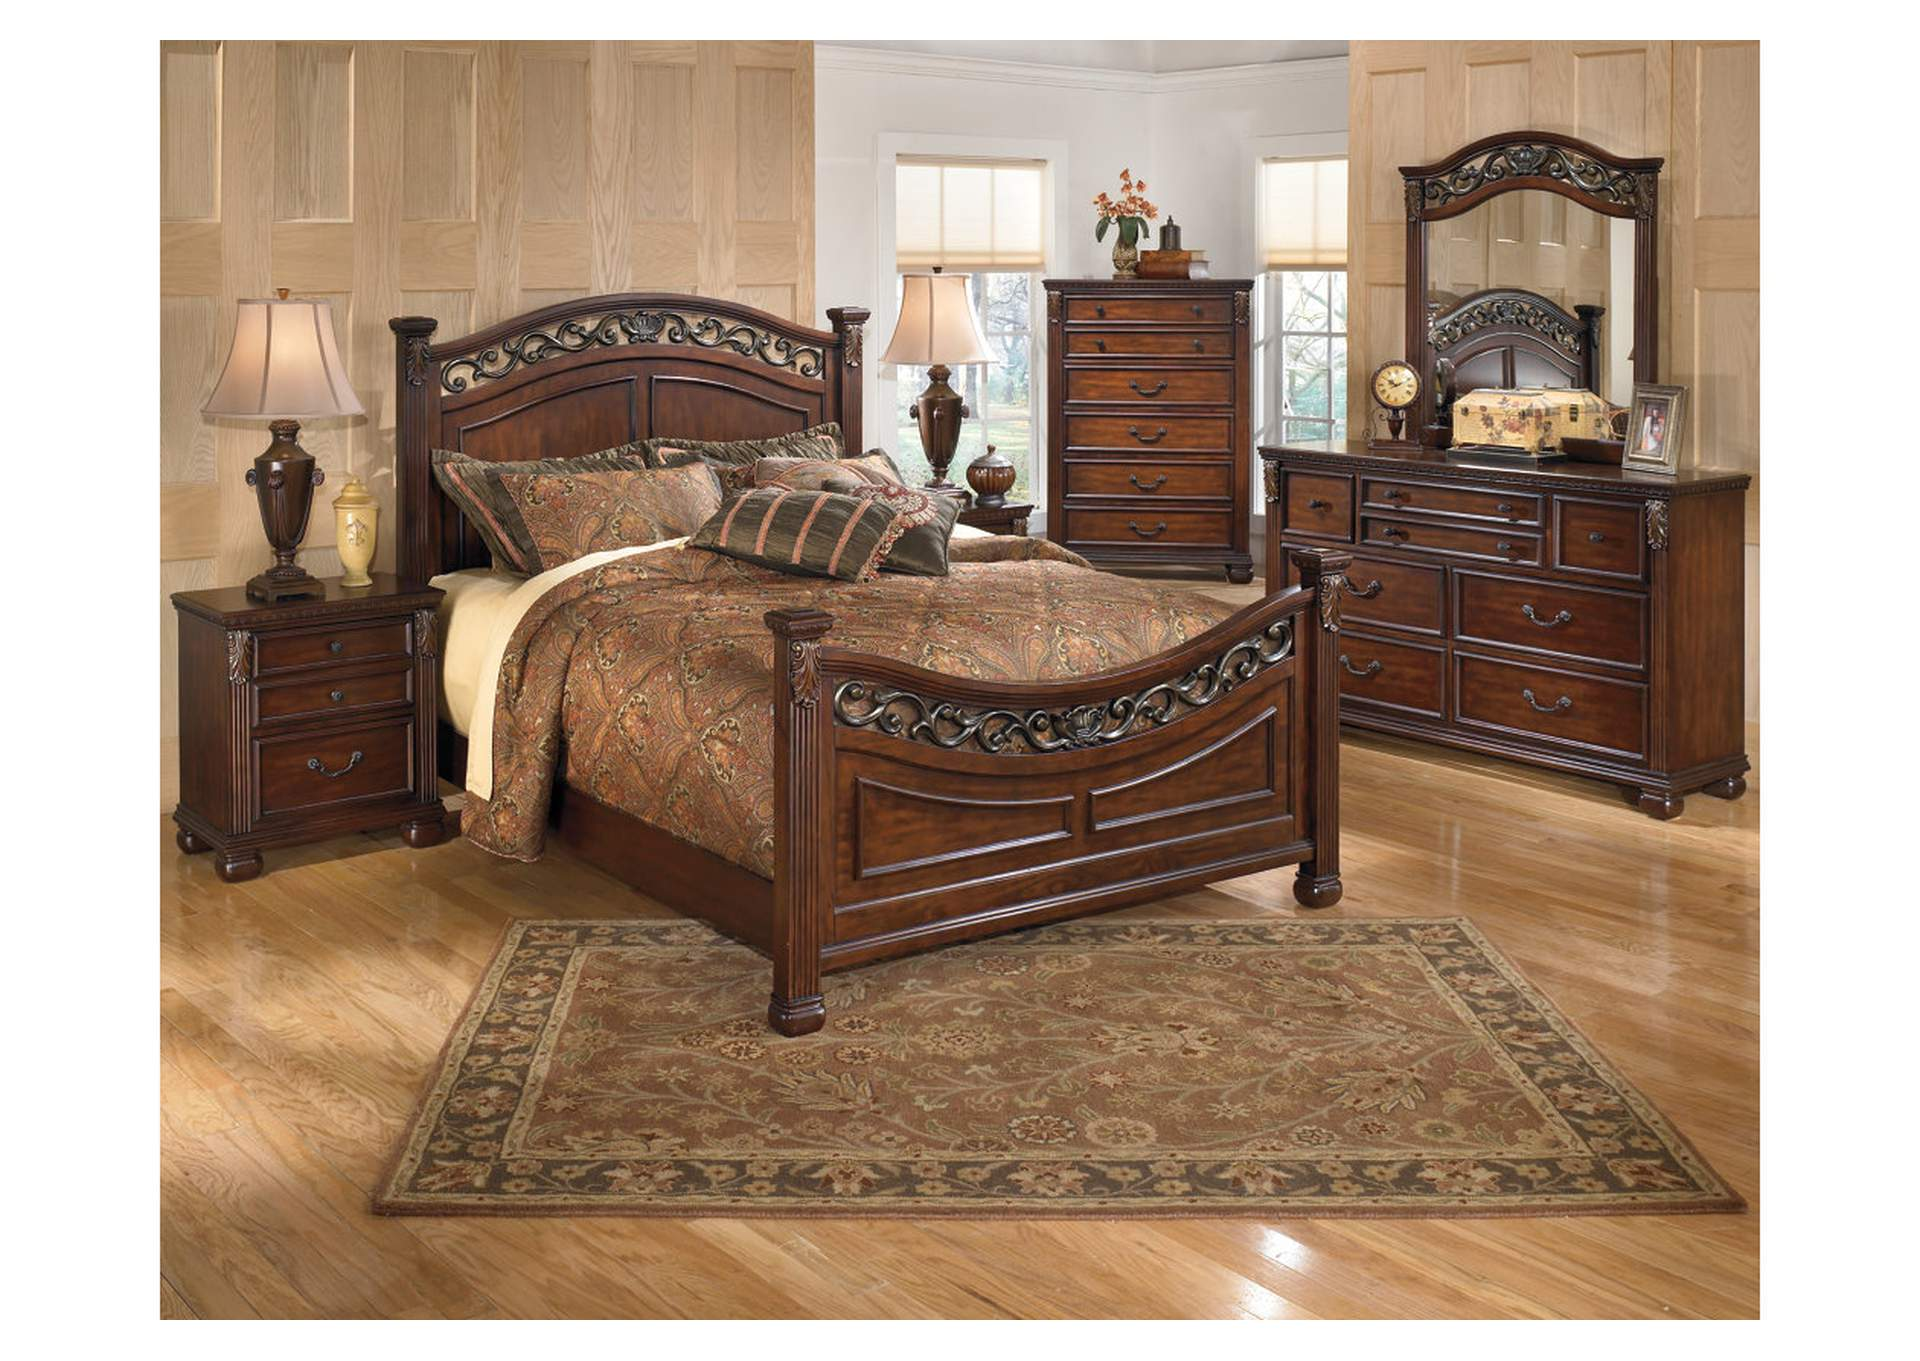 Leahlyn California King Panel Bed w/Dresser & Mirror,Signature Design by Ashley